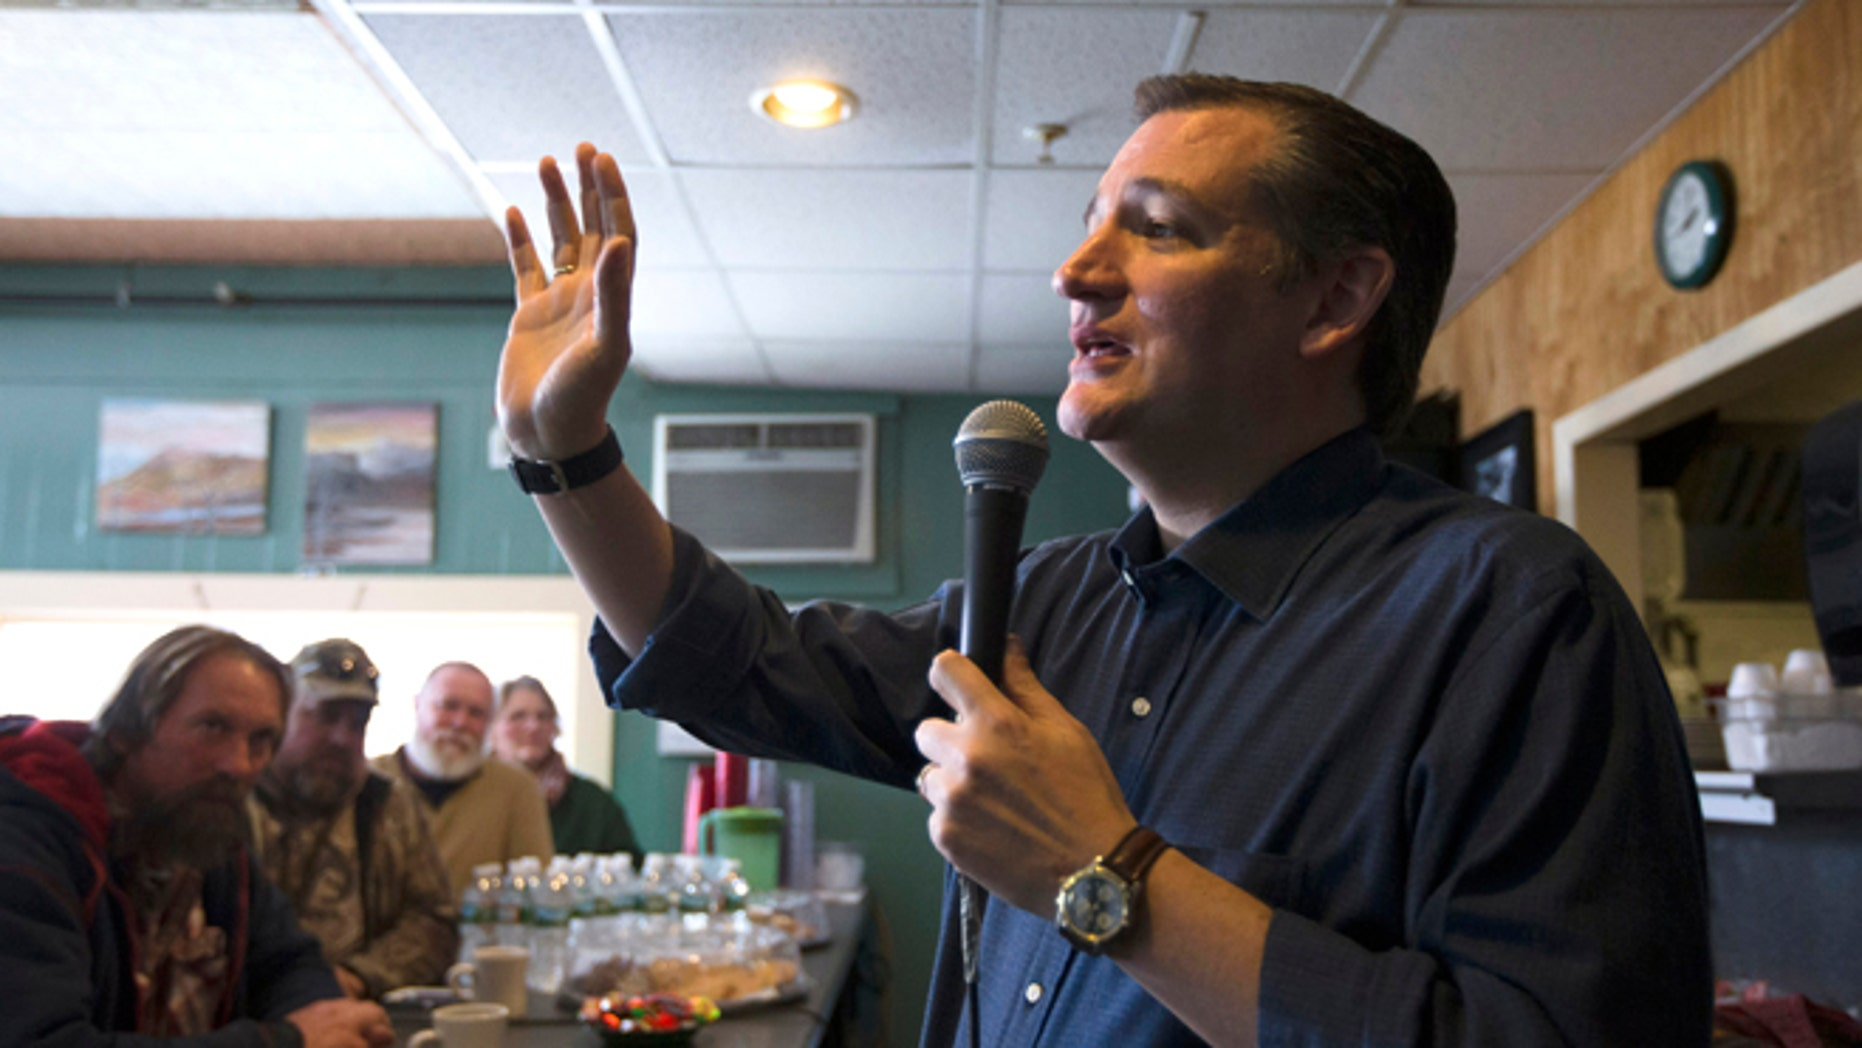 In this Jan. 19, 2016, photo, Republican presidential candidate, Sen. Ted Cruz, R-Texas speaks during a campaign stop at Lino's Restaurant in Sanbornville, N.H. Cruz is dreaming of a face-off with Democratic front-runner Hillary Clinton, even before the first primary votes are cast. He warns his supporters about what he thinks America will look like under a Clinton administration, predicting a nuclear-armed Iran, amnesty for millions of people in America illegally and the continuation of President Barack Obamas health care law.(AP Photo/John Minchillo)